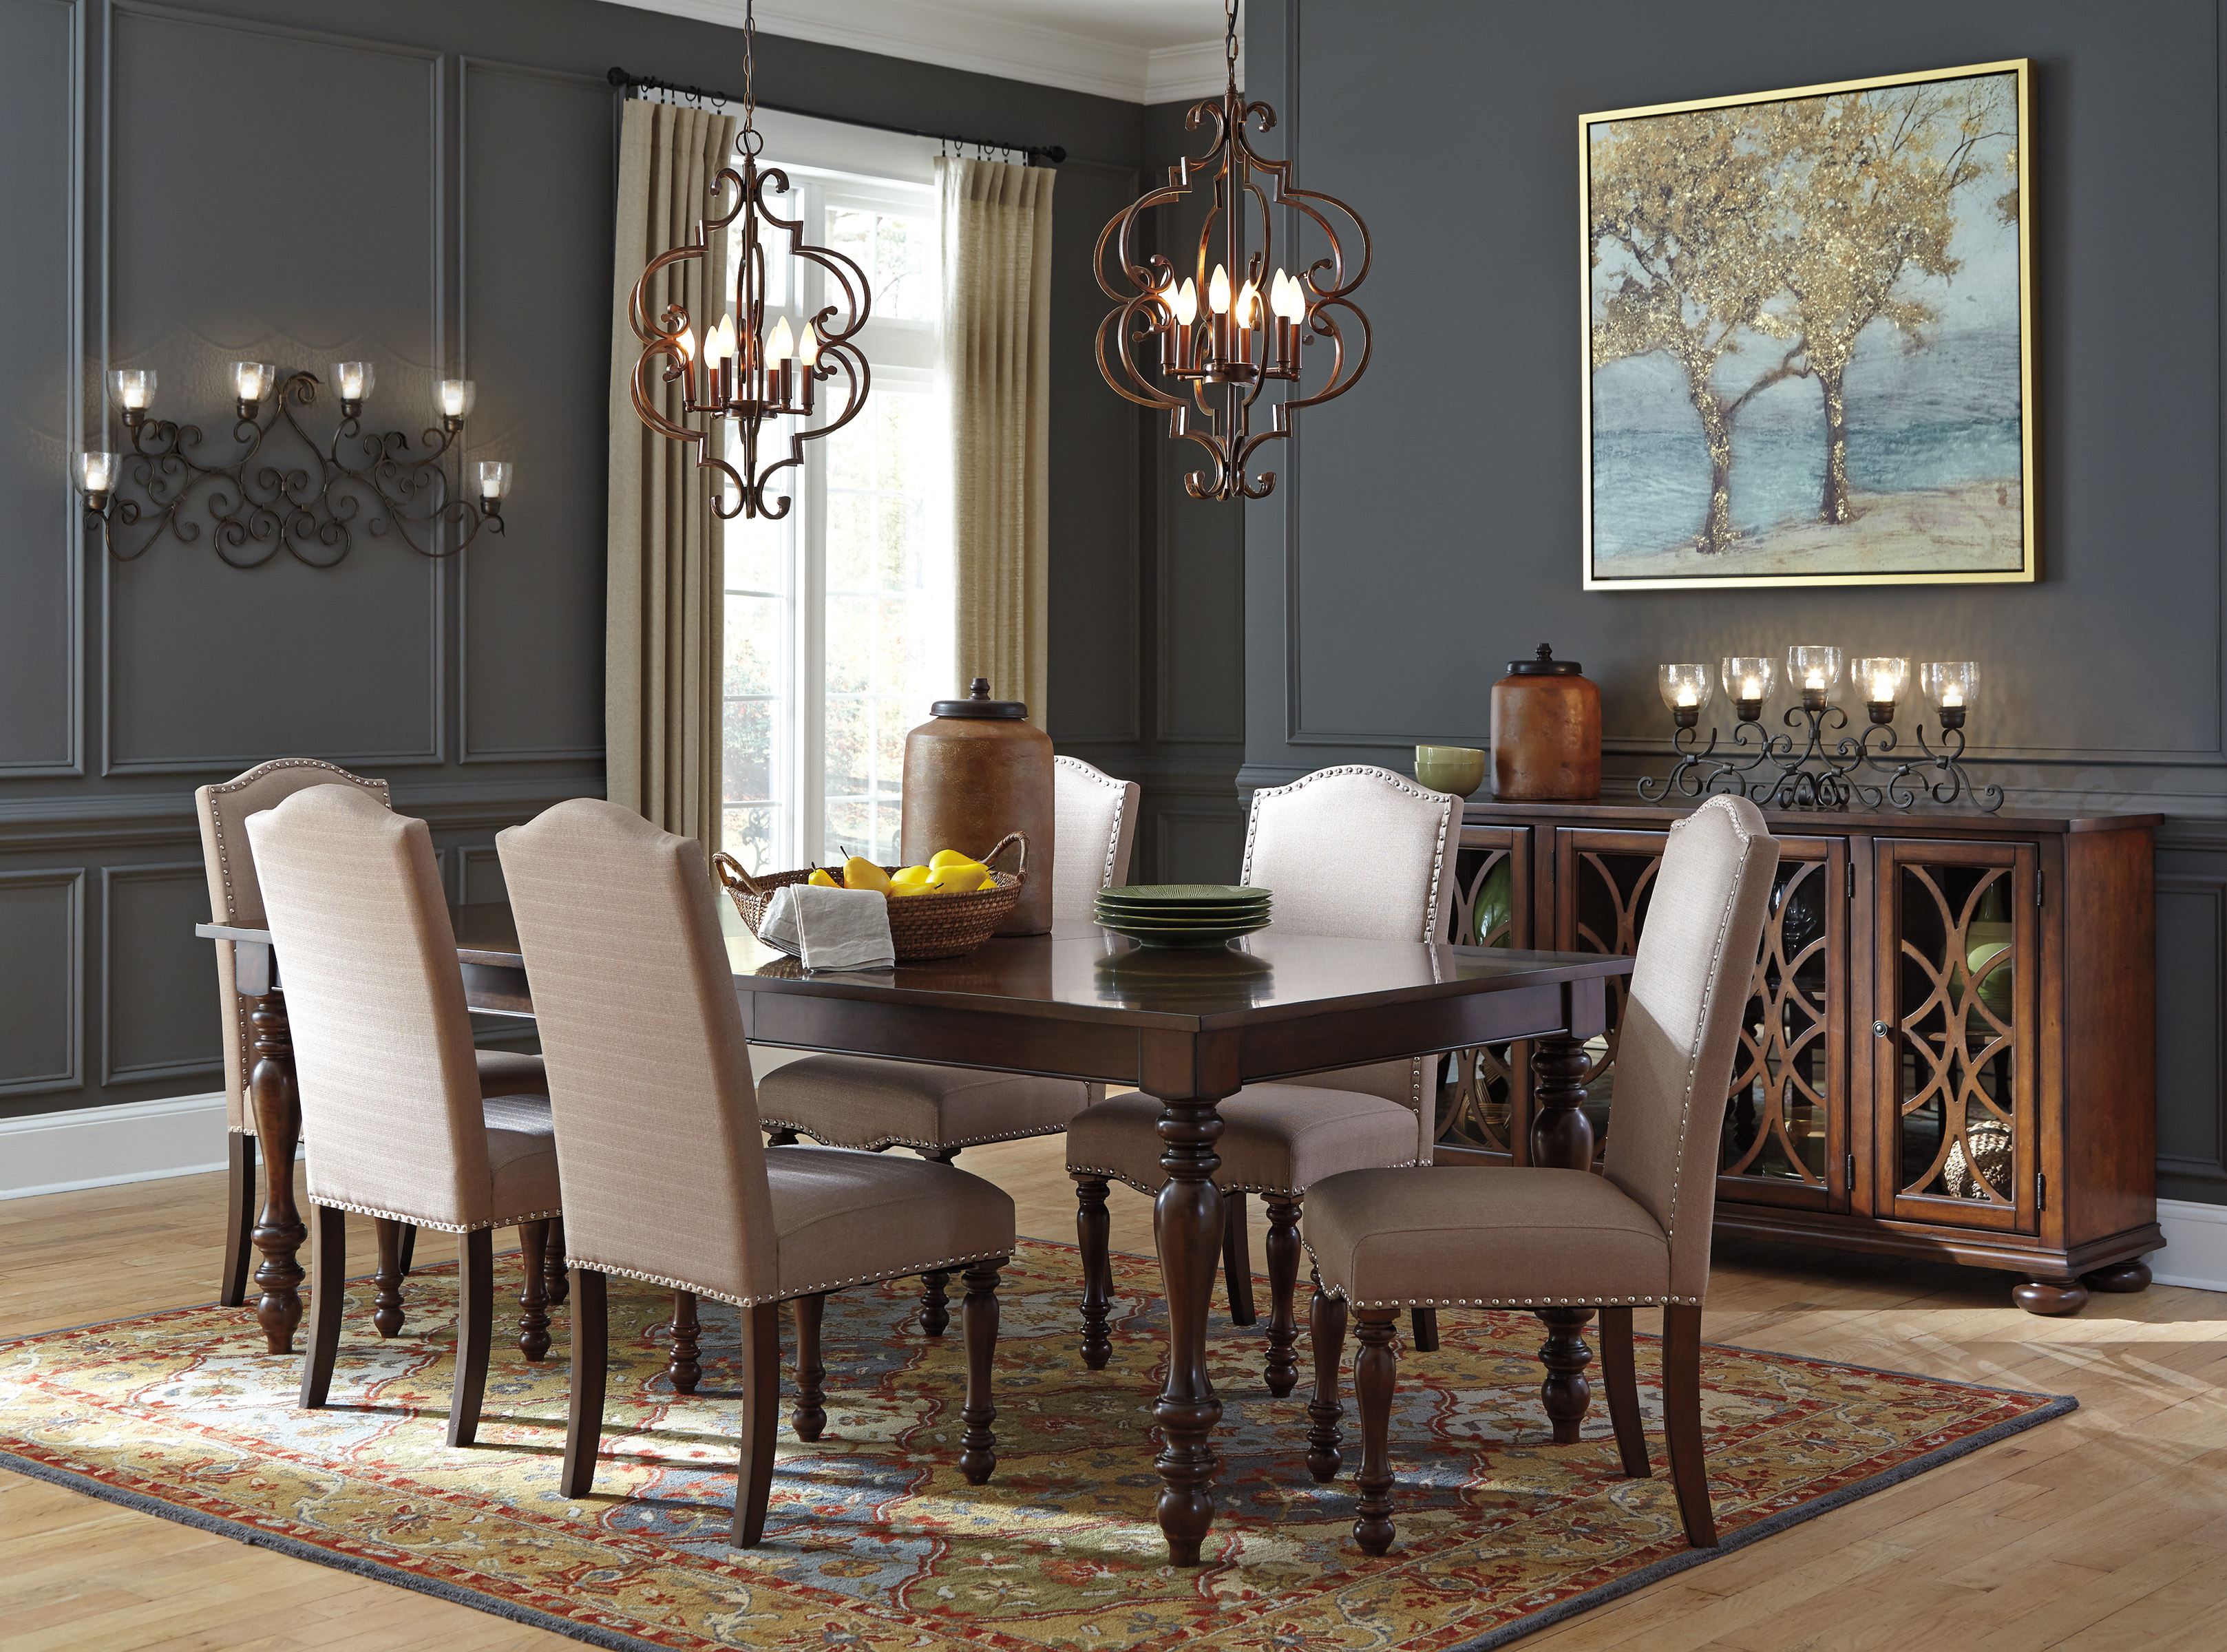 Signature Design By Ashley Baxenburg D506 Dining Table Set